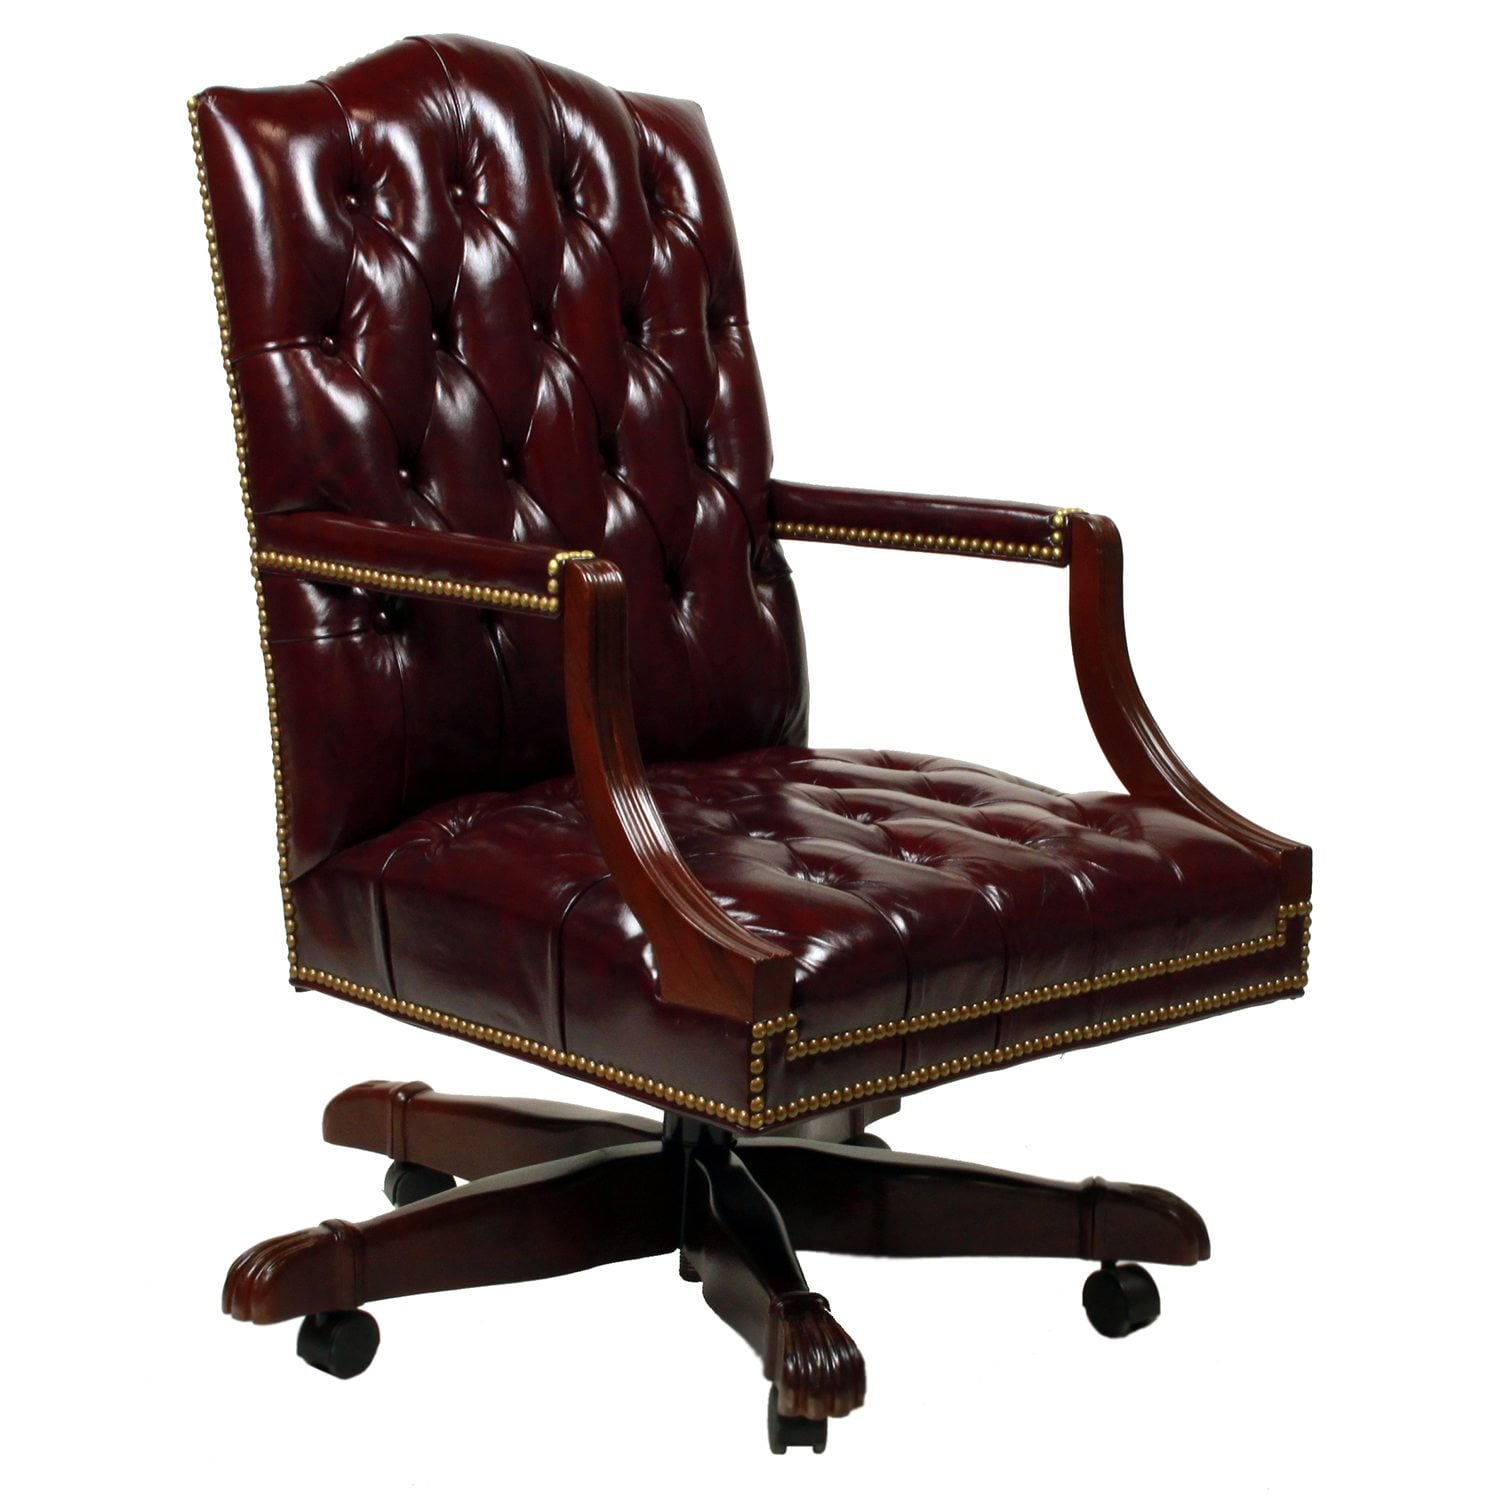 Tufted Leather Office Chair Cabot Wrenn Graham Used Tufted Leather Task Chair Glazed Blackberry